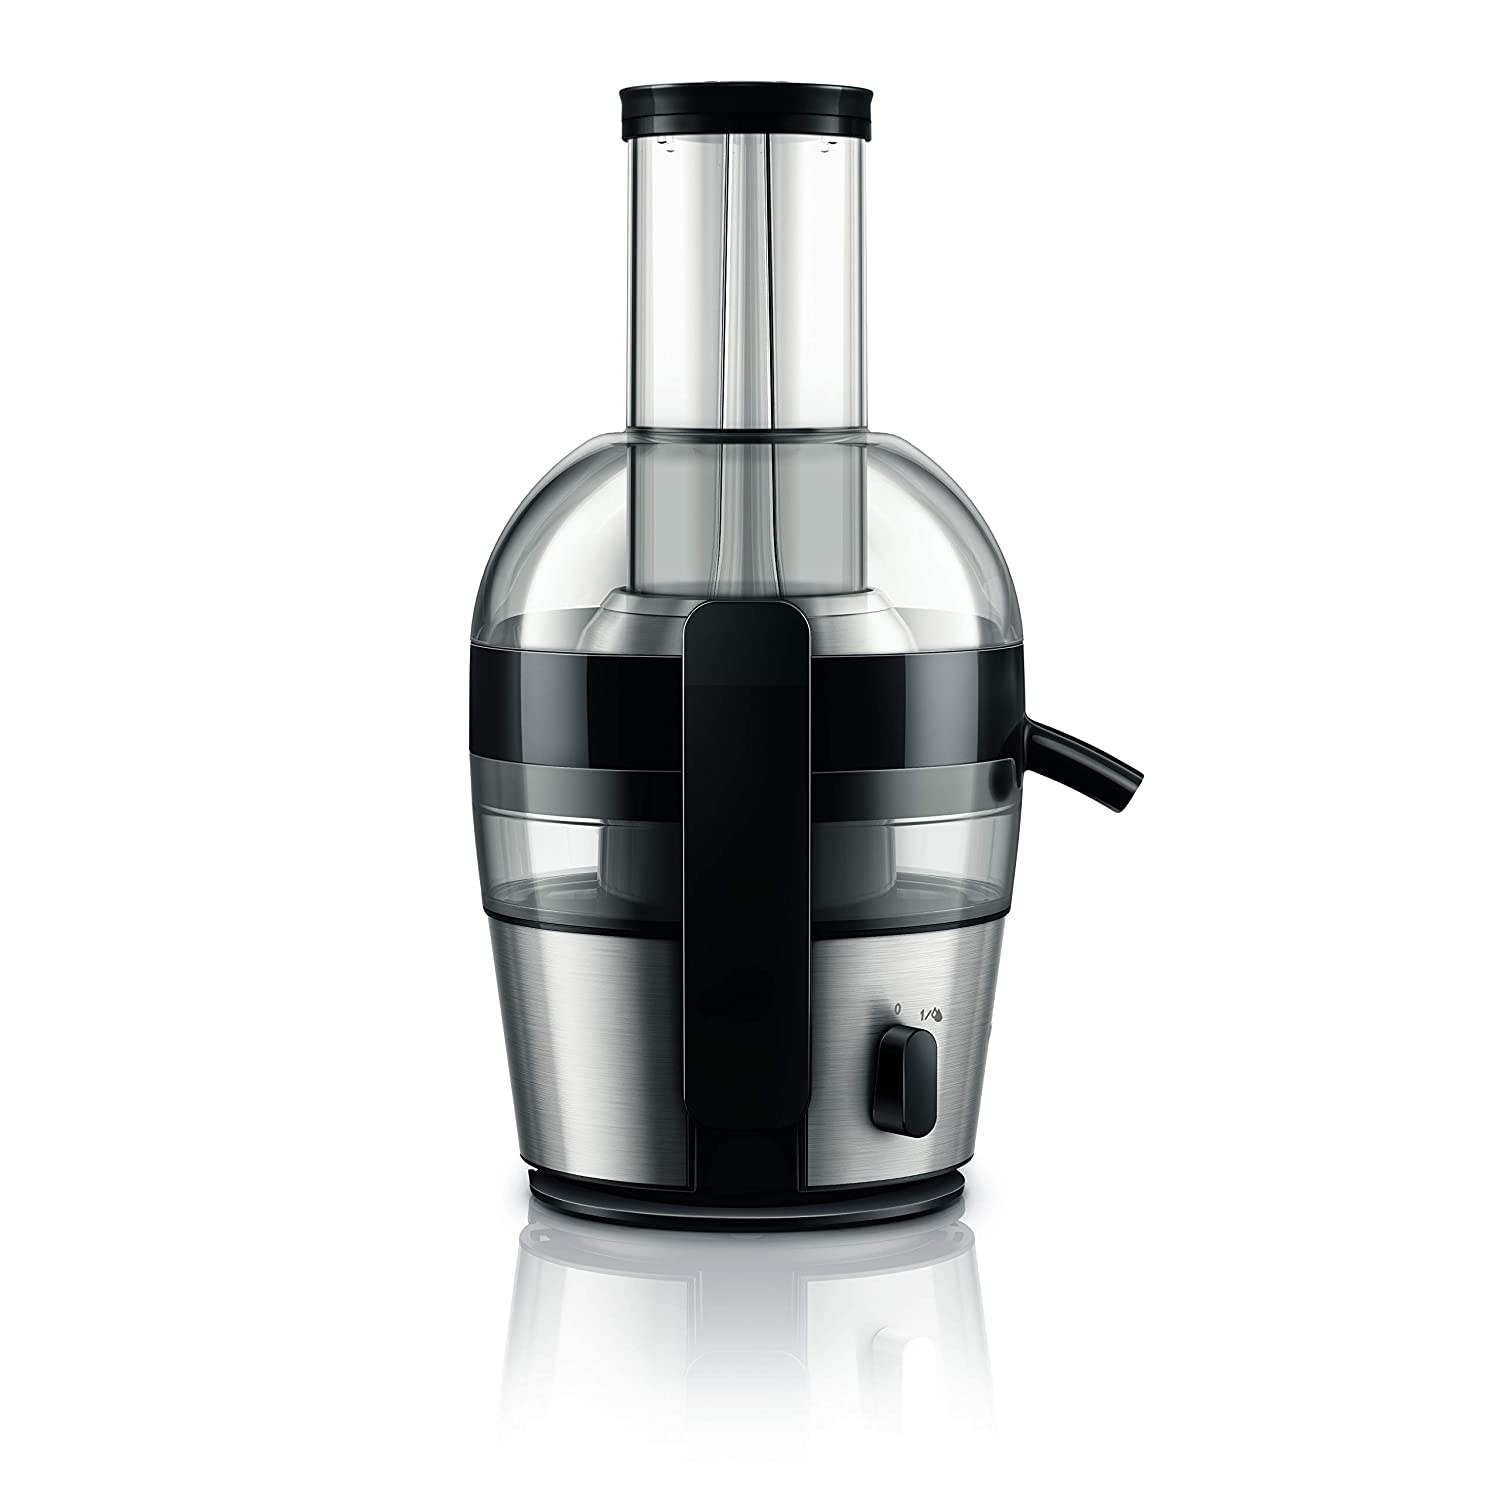 A Philips juicer